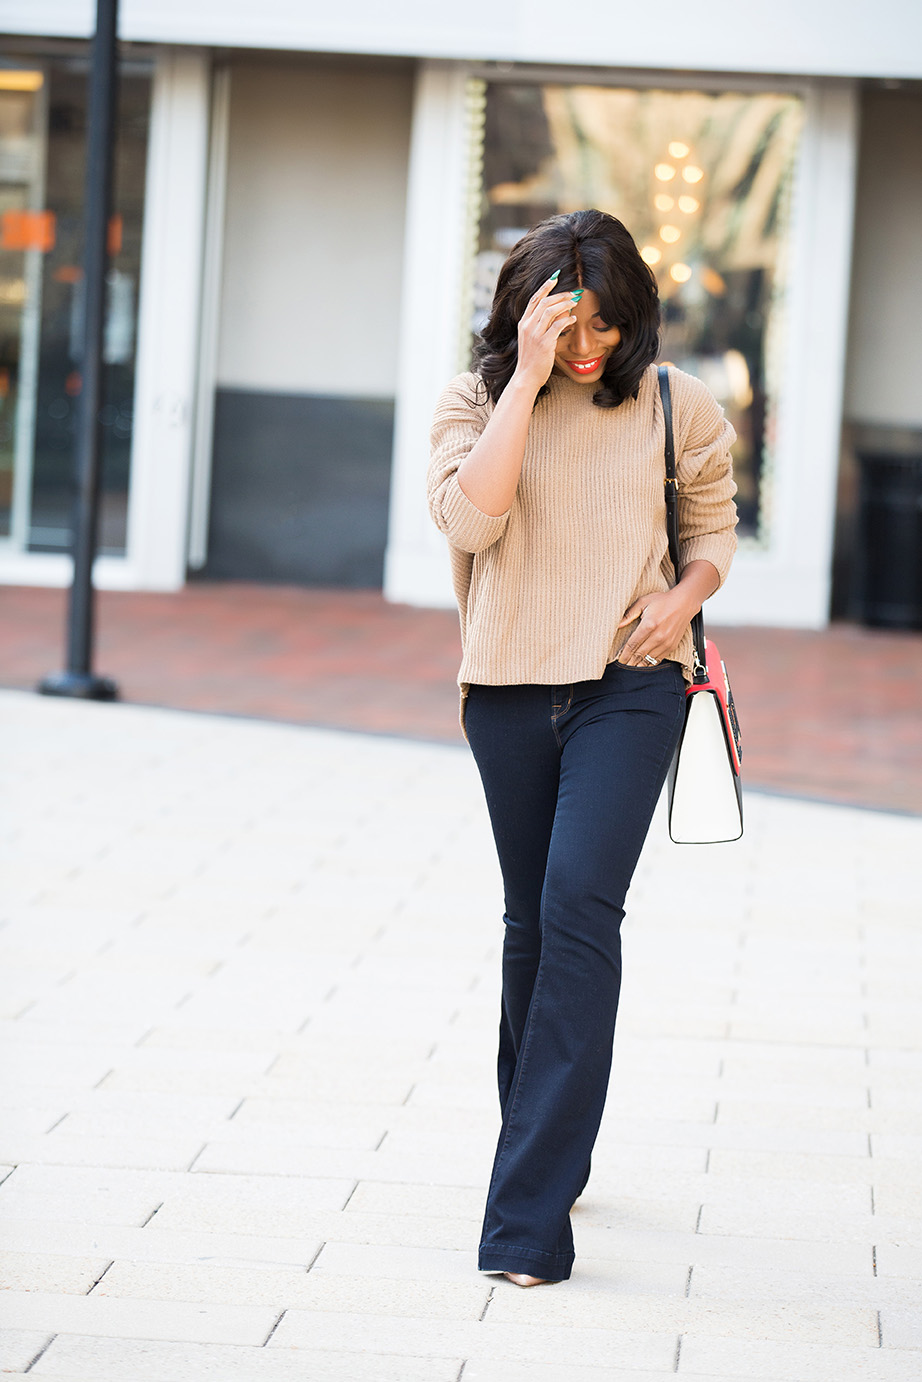 Flare jeans and knotted sweater, www.jadore-fashion.com